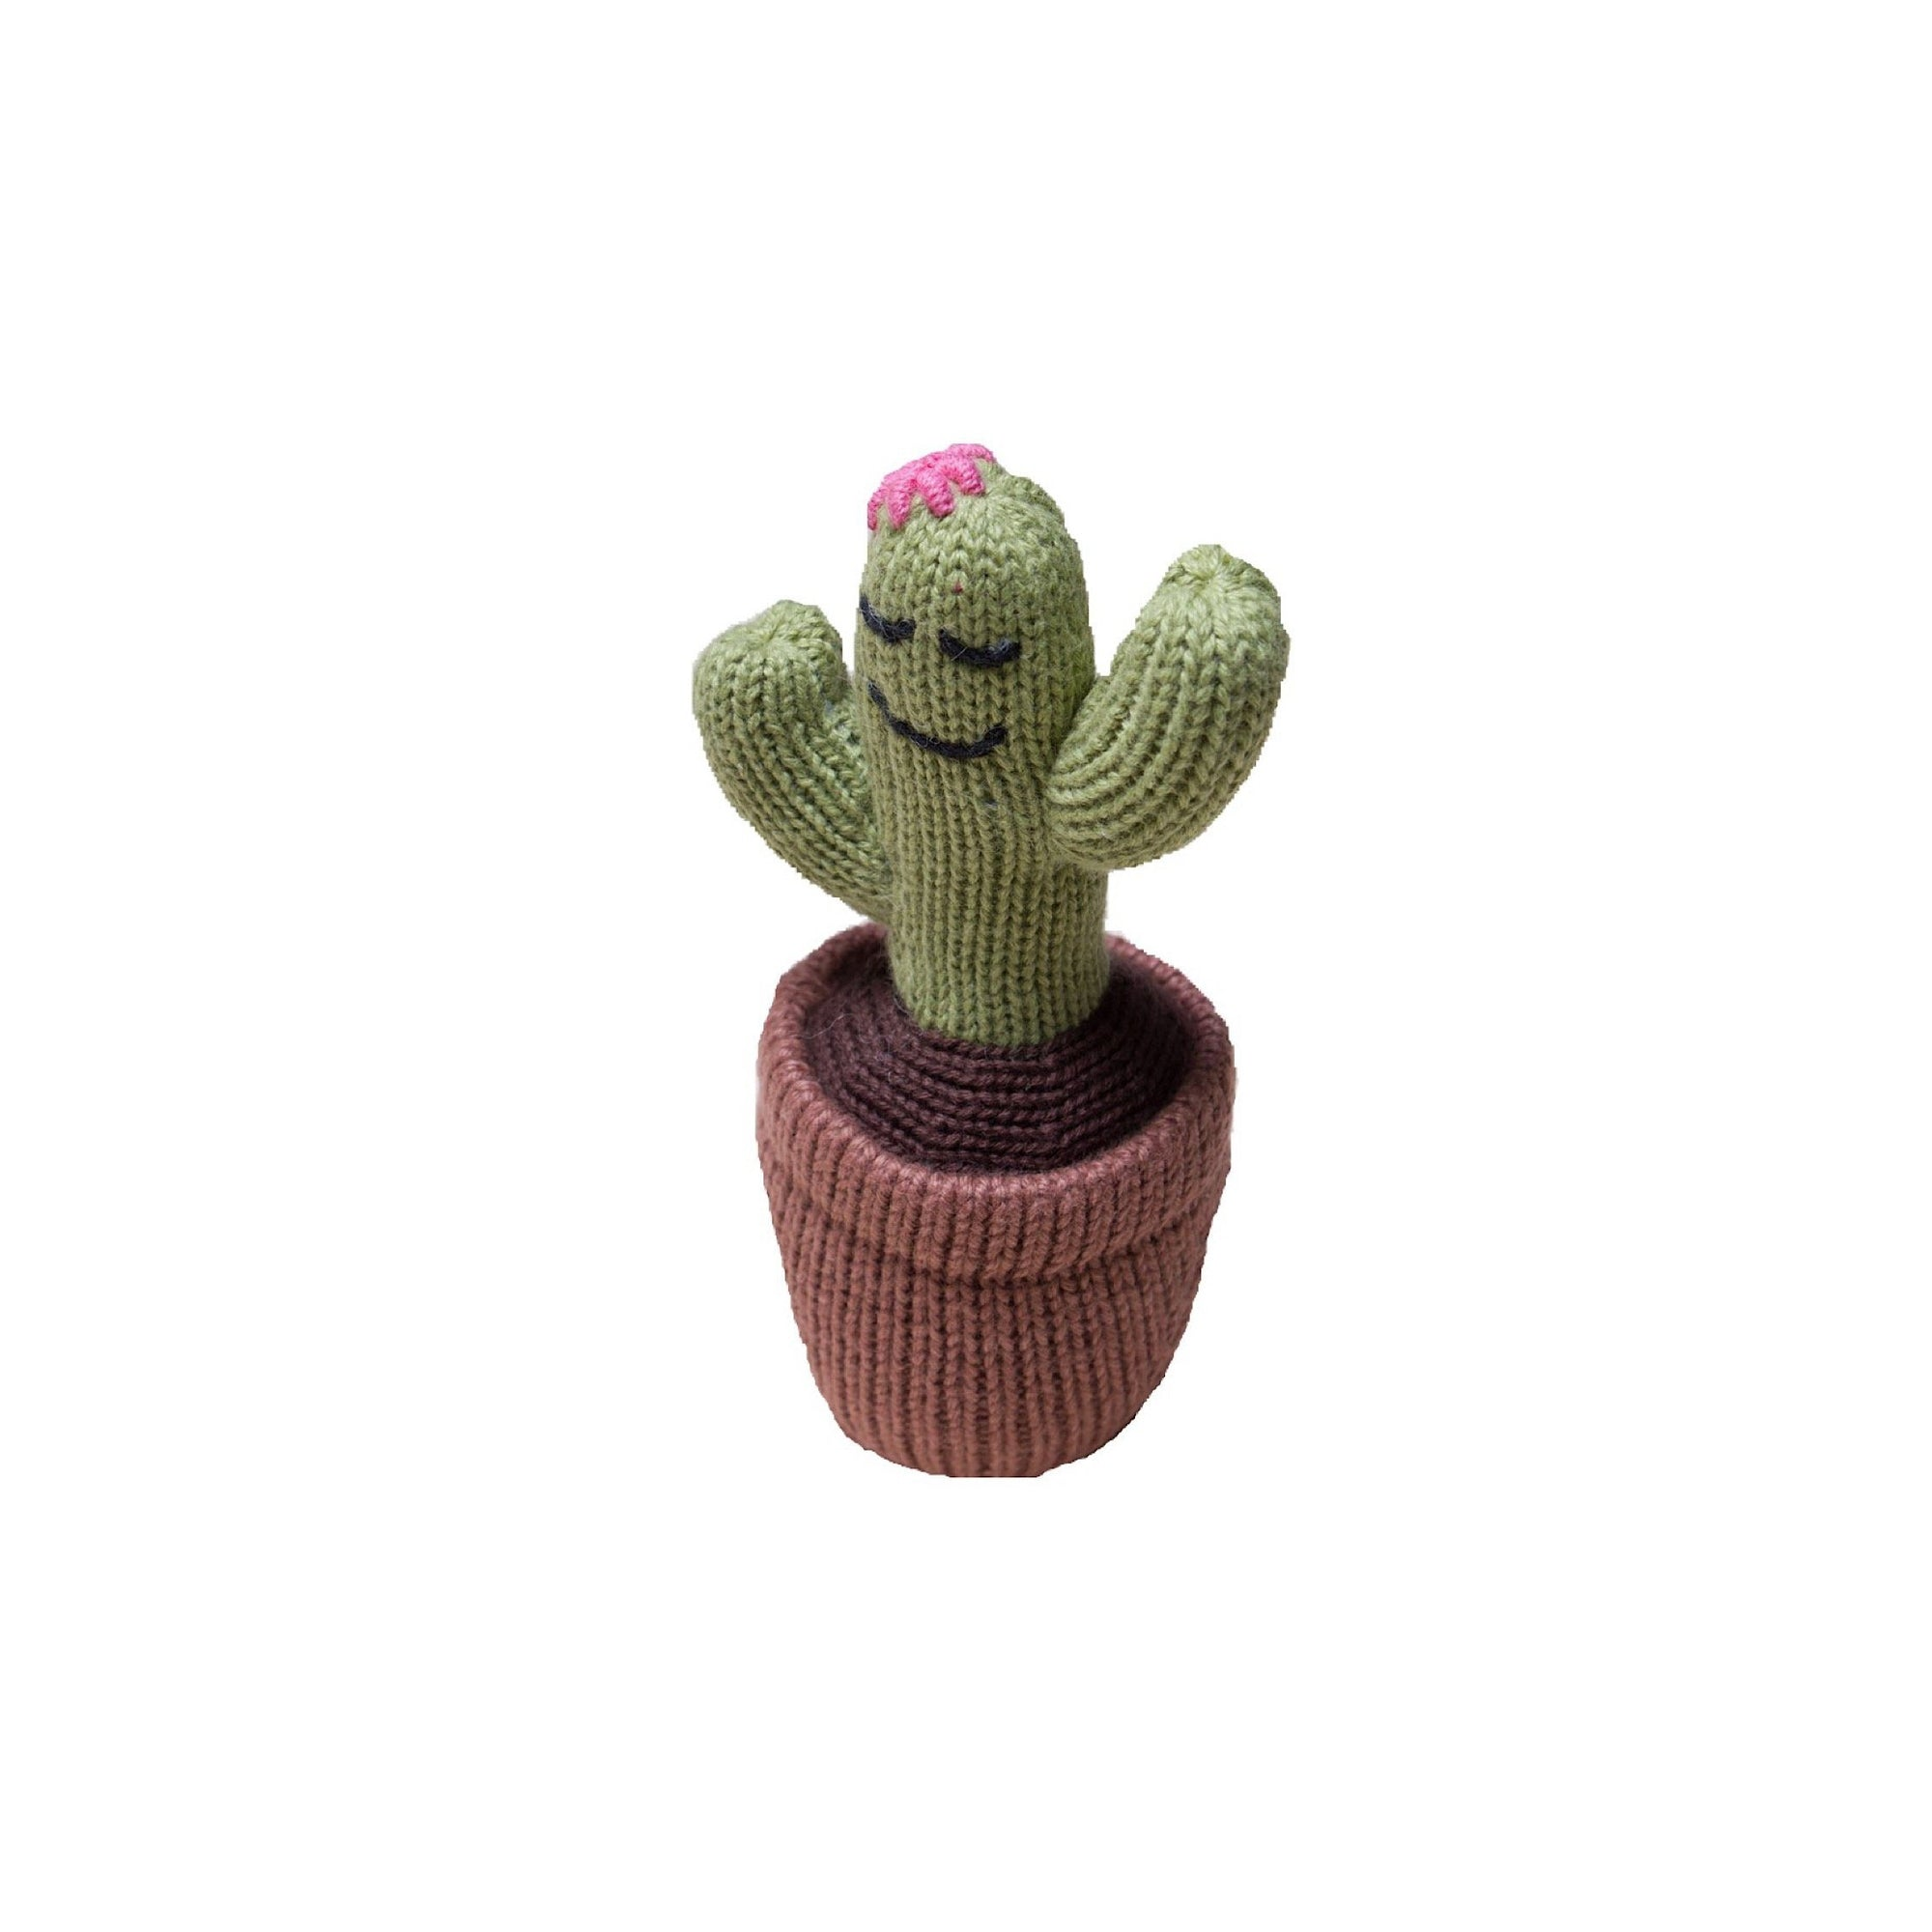 Organic Sleeping Cactus Knit Rattle